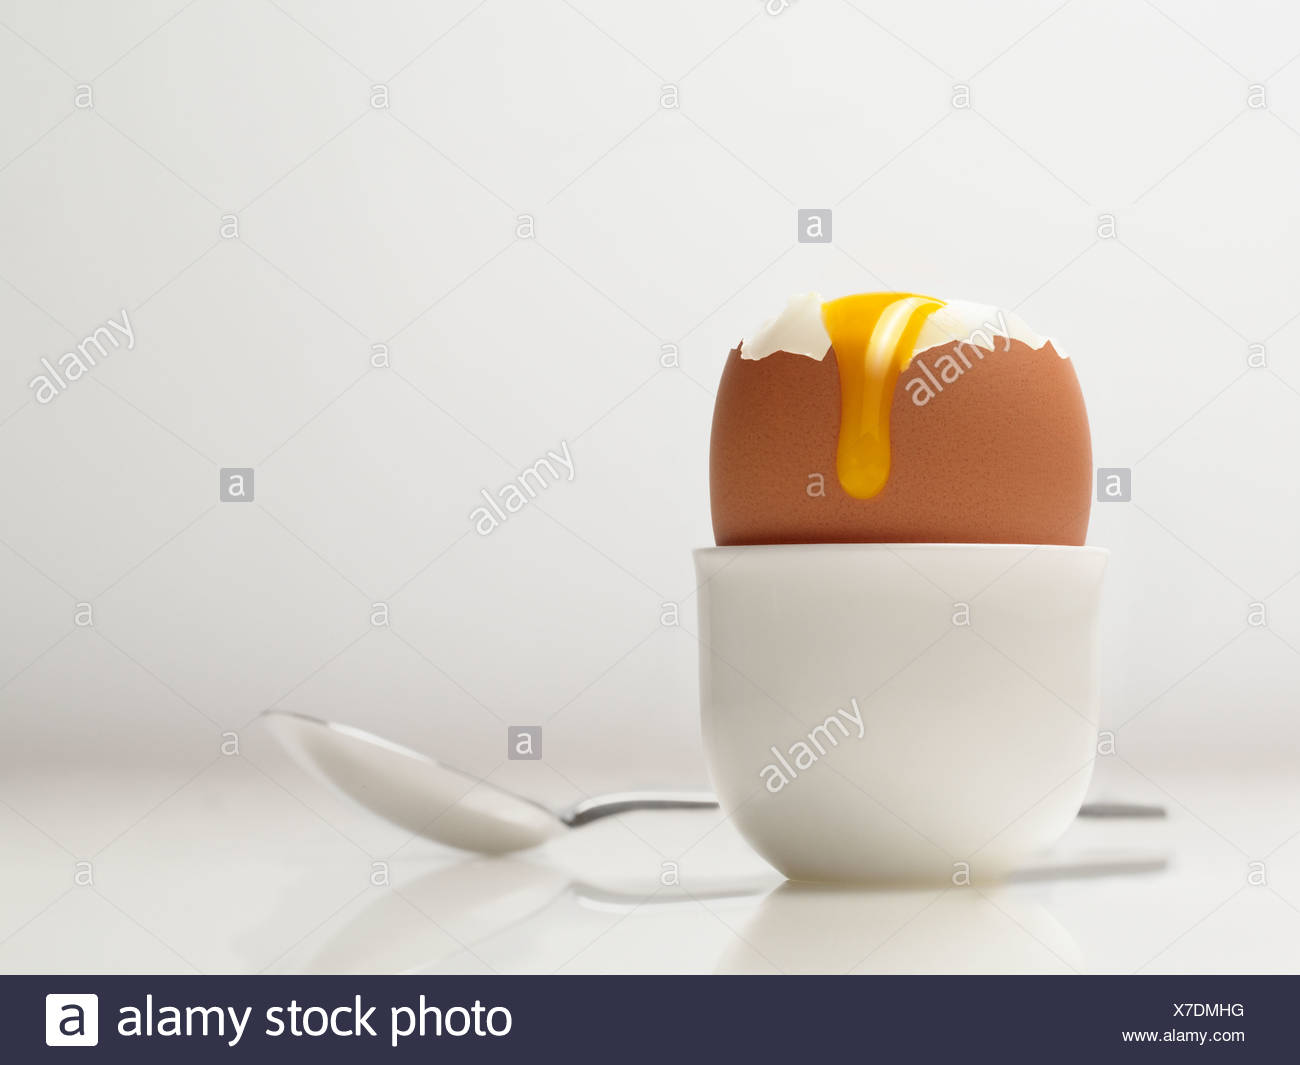 Runny Boiled Egg - Stock Image